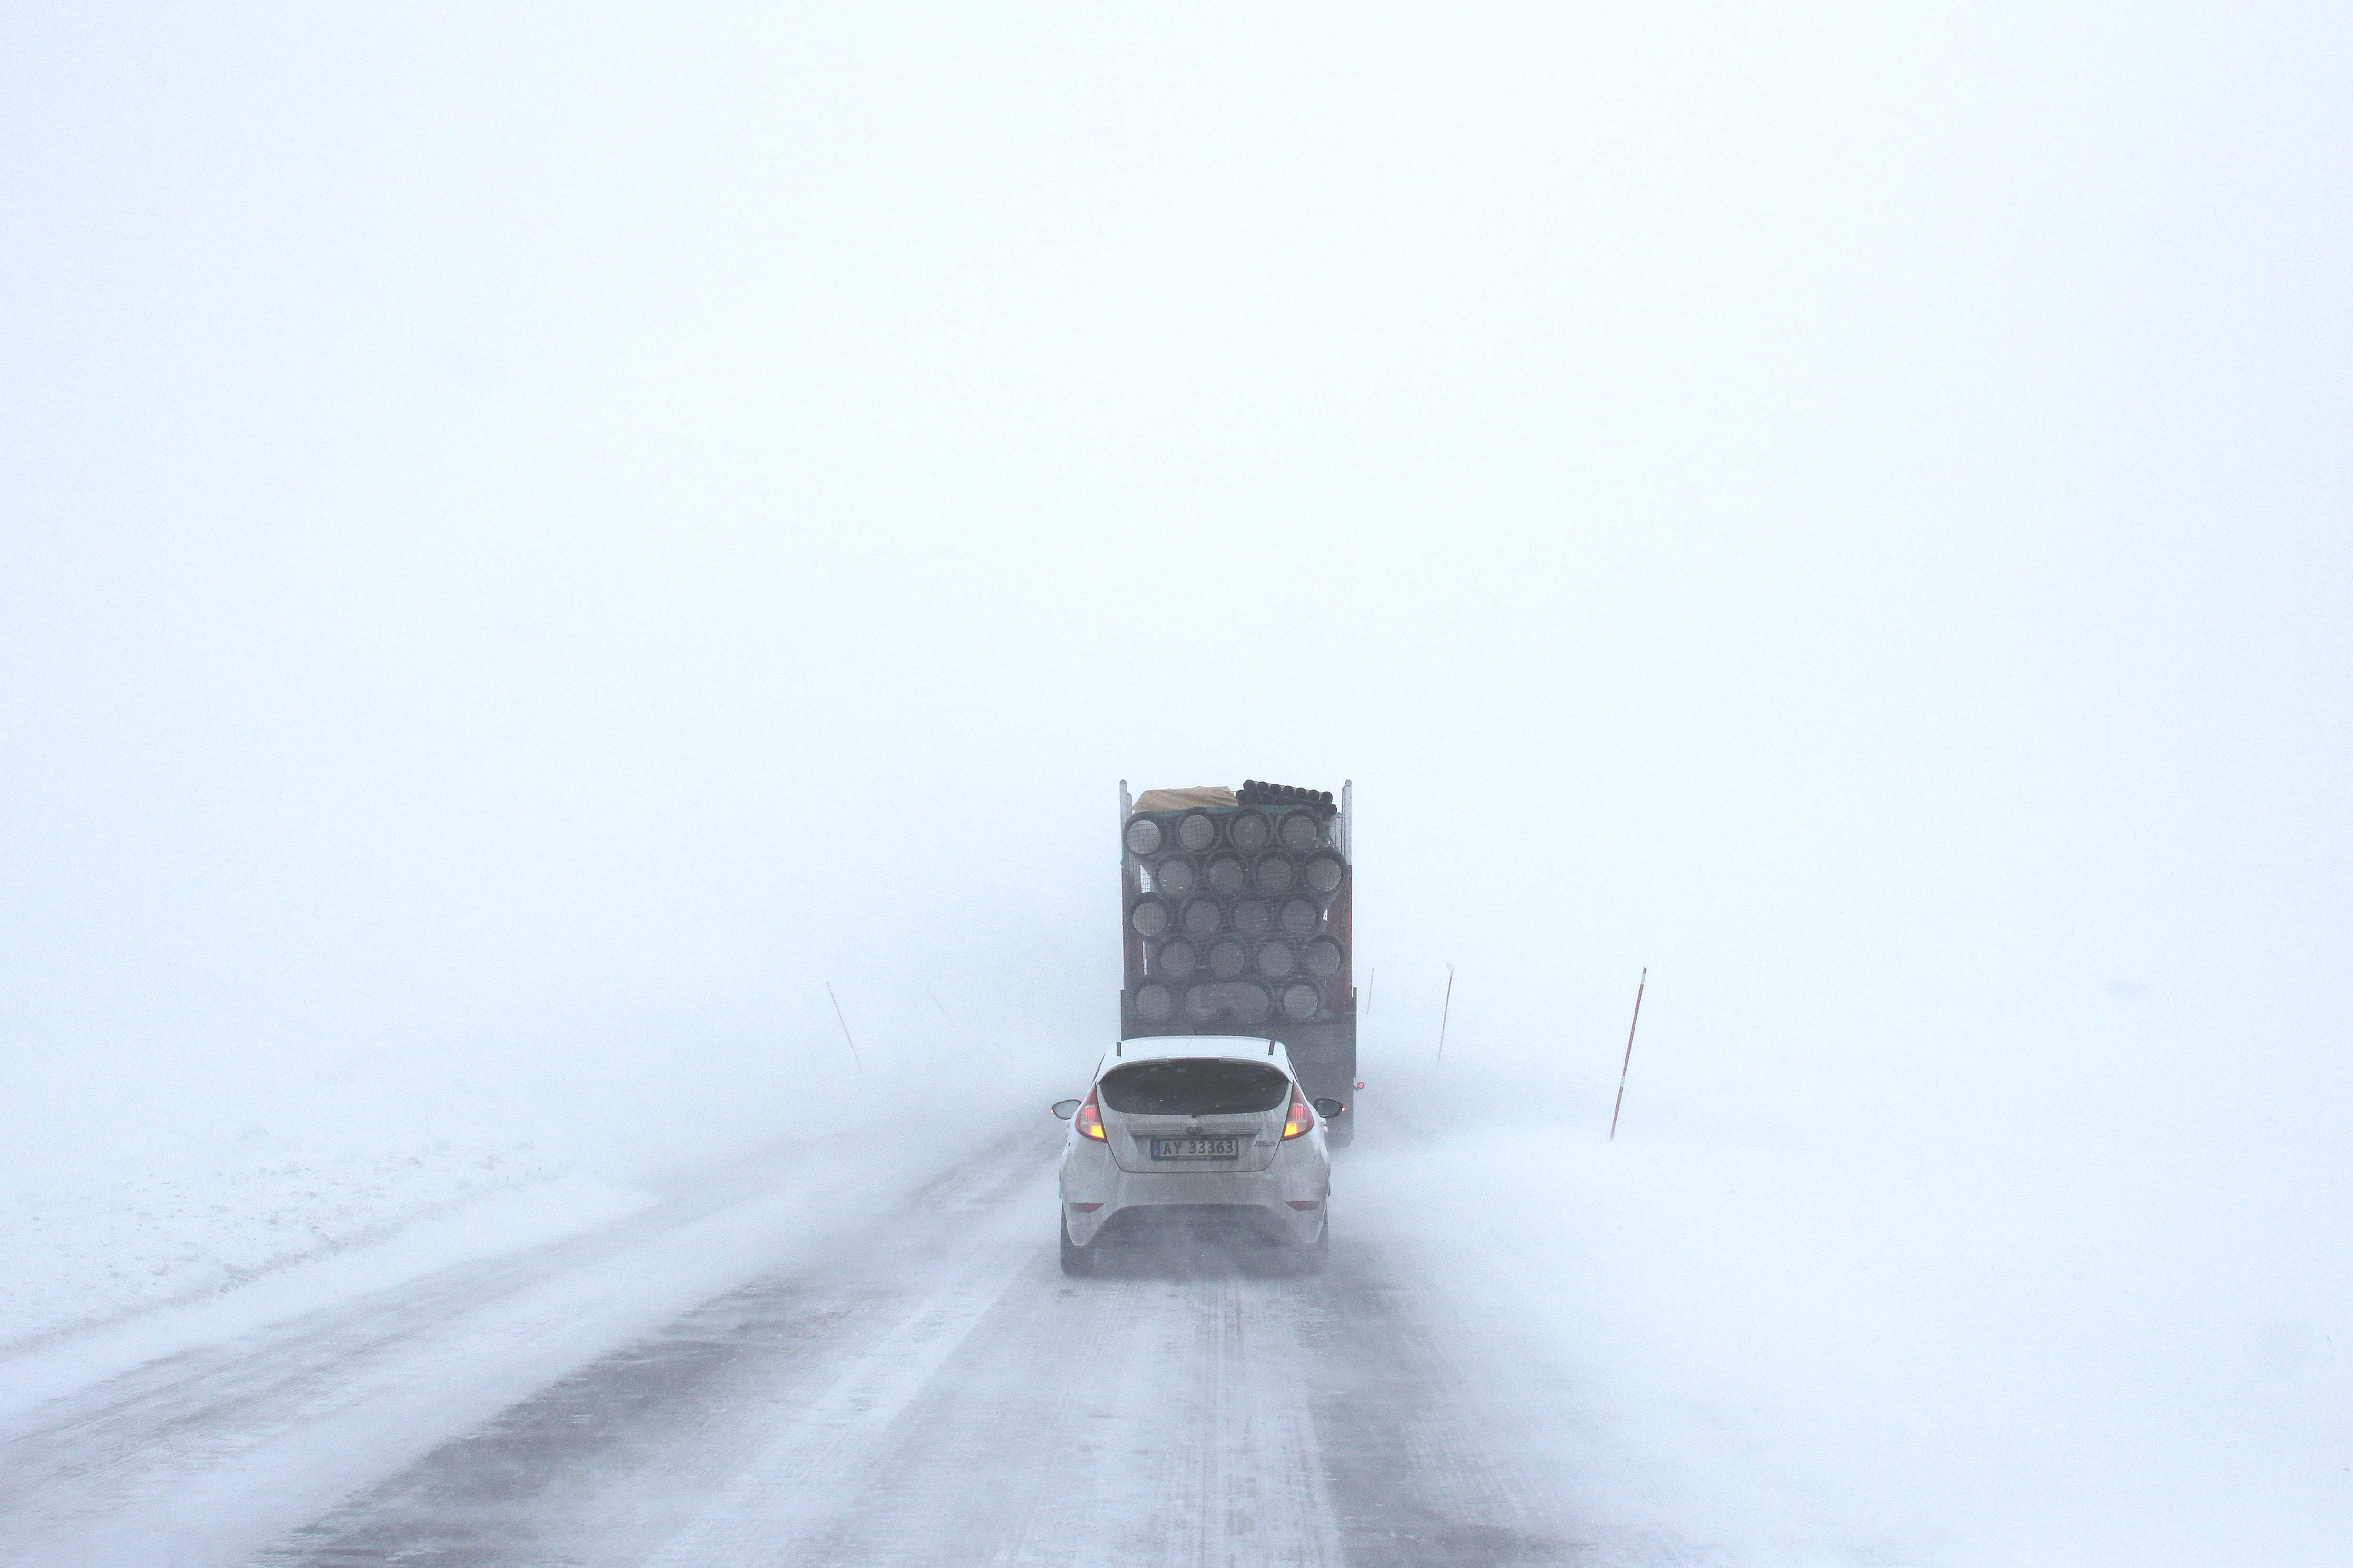 A foggy snowy drive with a car and a truck